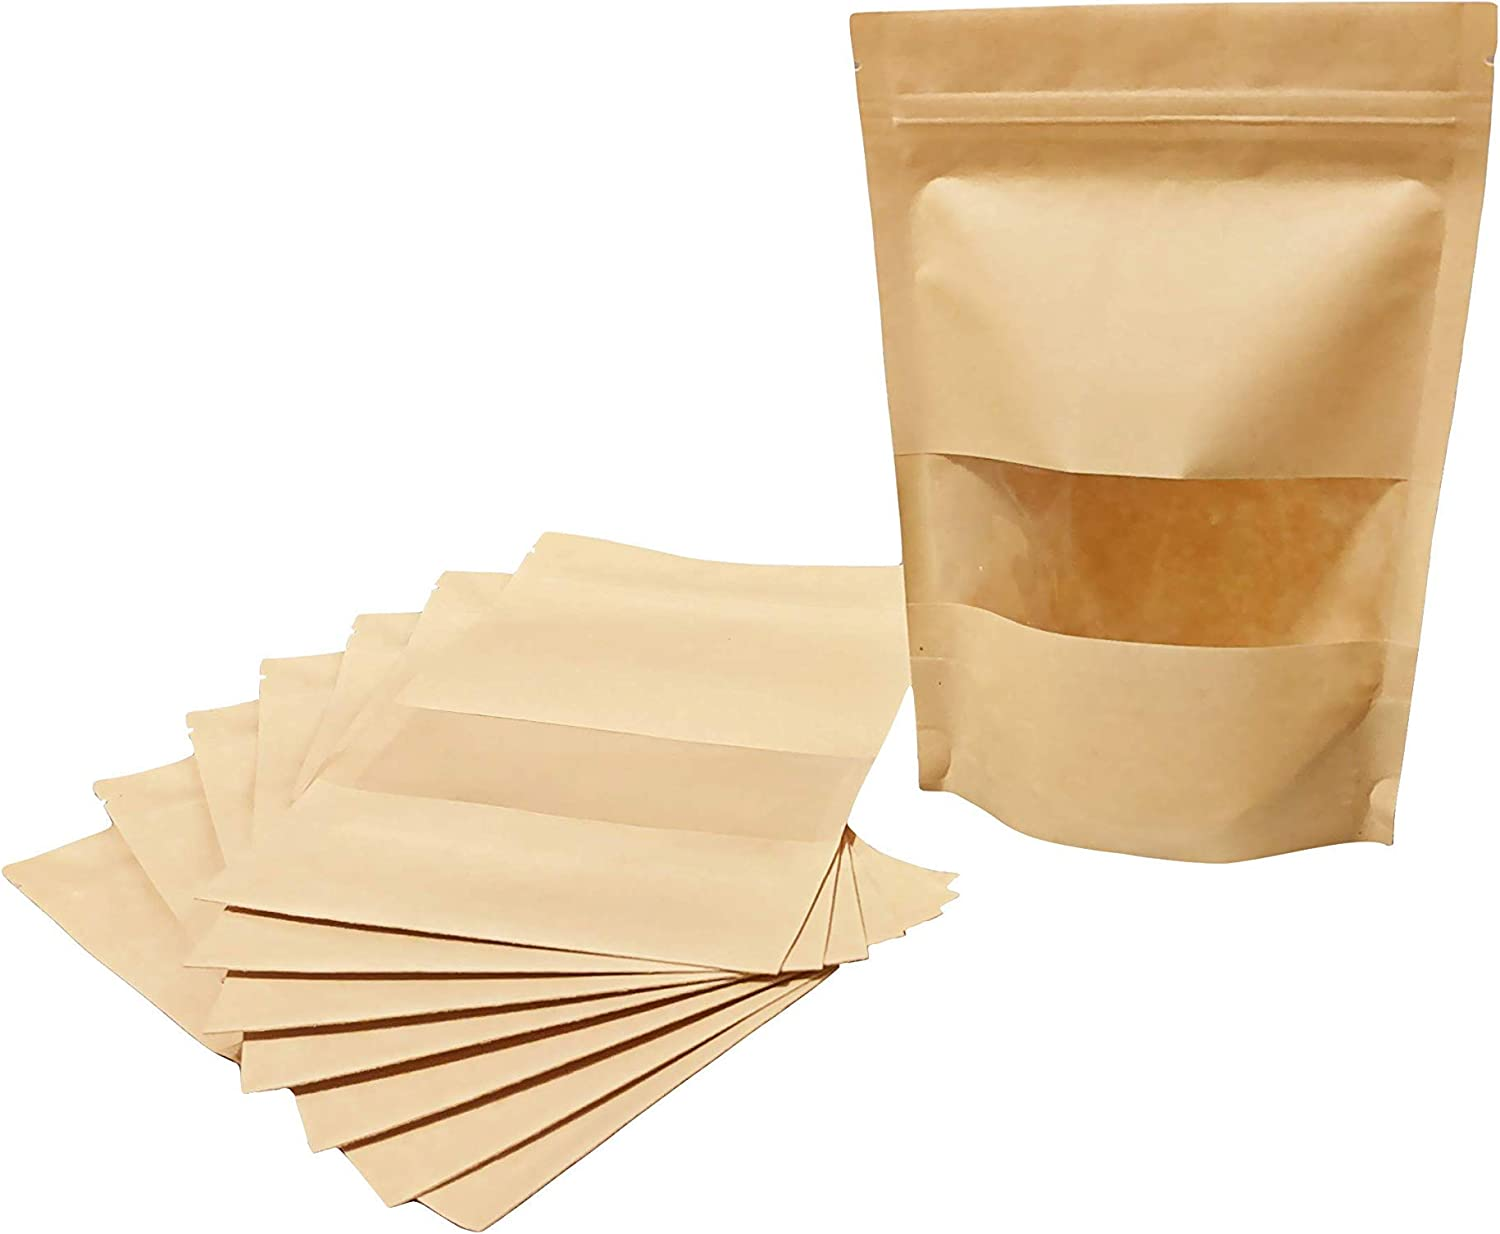 50 Pcs (5.5''x7.8'') Kraft Stand Up Pouches Food Packaging Storage Bags Brown Paper Bag Matte Clear Plastic Window Resealable/Reusable Ziplock Zip Small Oz Heat Seal Smell Proof Zipper For Product